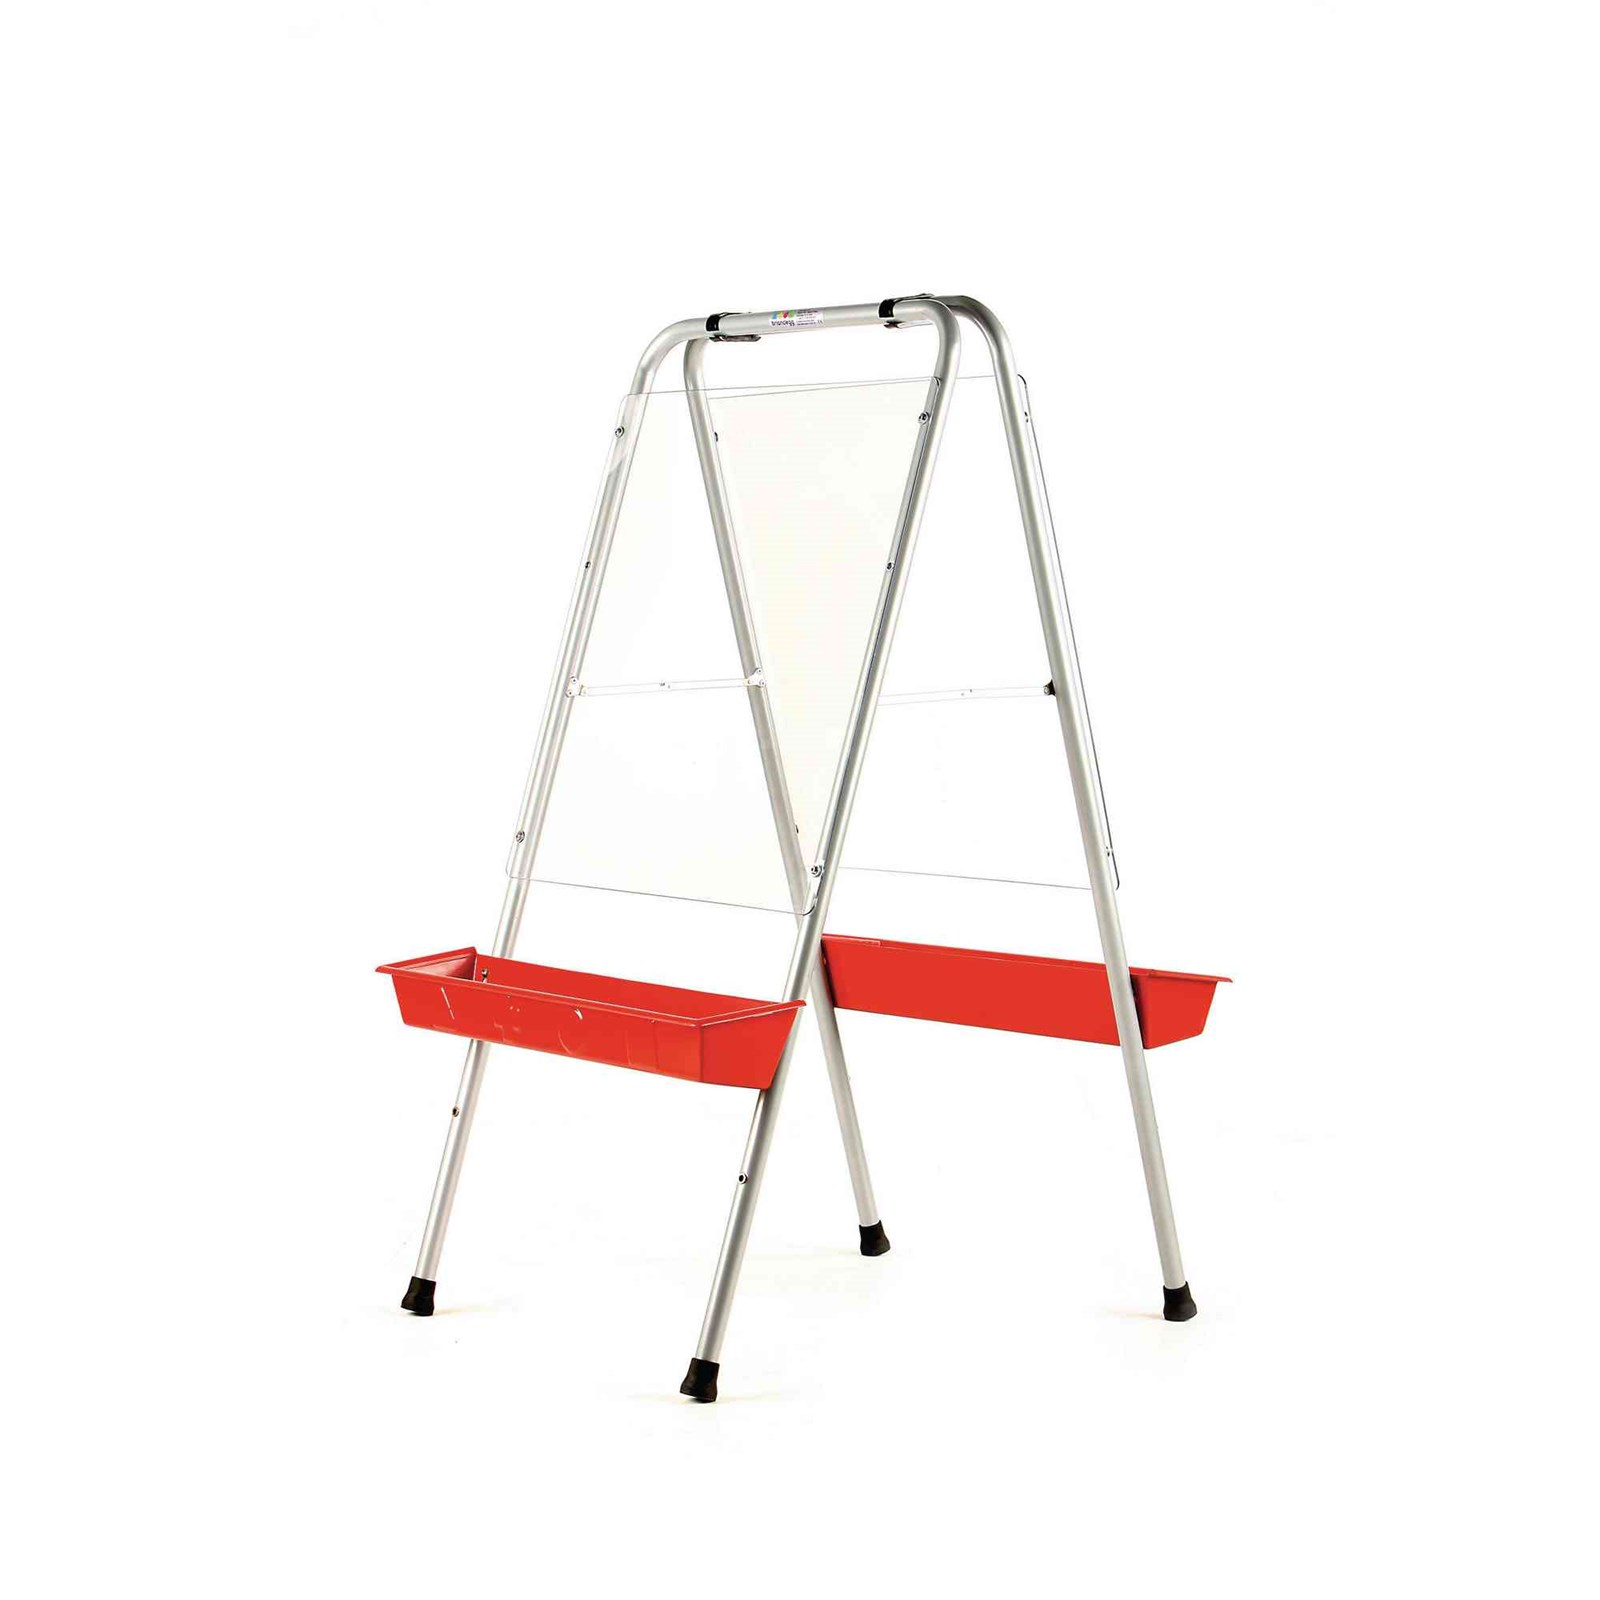 2 Sided Primary Easel